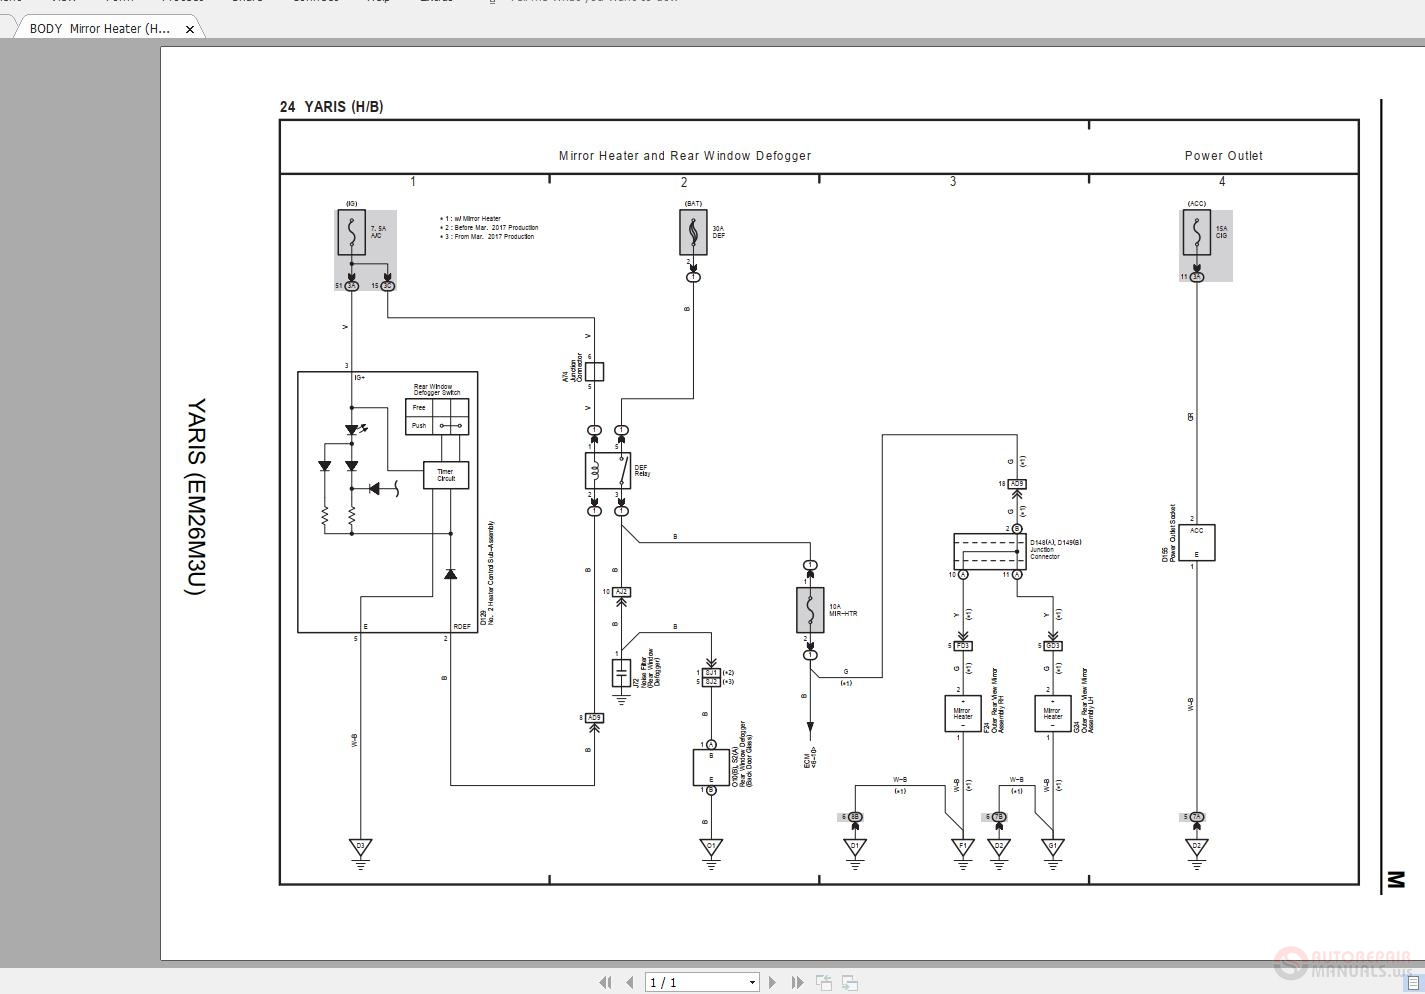 Toyota Yaris Yaris Em M U Electrical Wiring Diagram on Toyota Camry 2006 Wiring Diagram